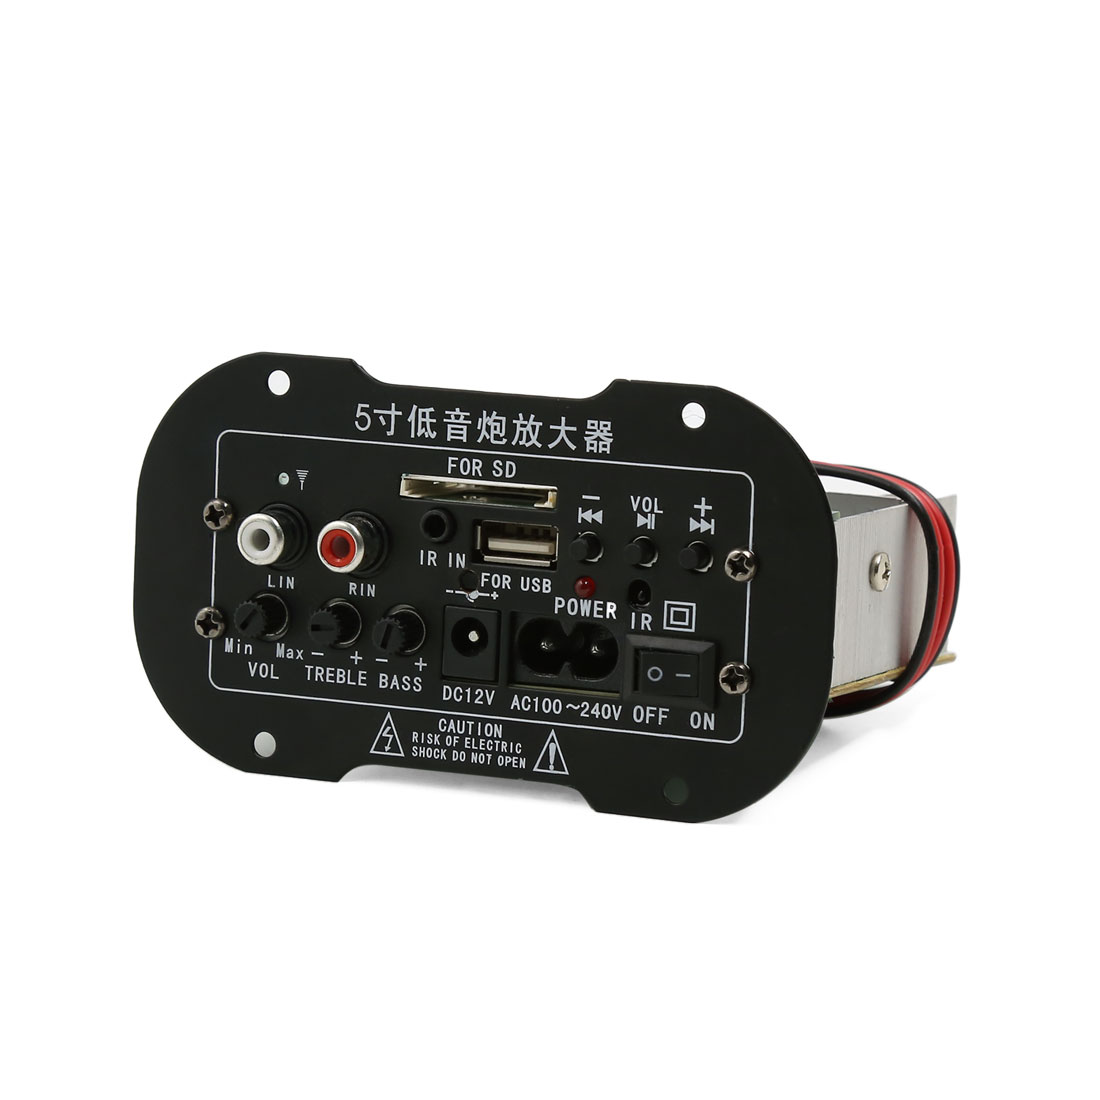 DC 12V AC 100-240V Subwoofer MP3 Decoder Amplifier Board for Car Motorcycle